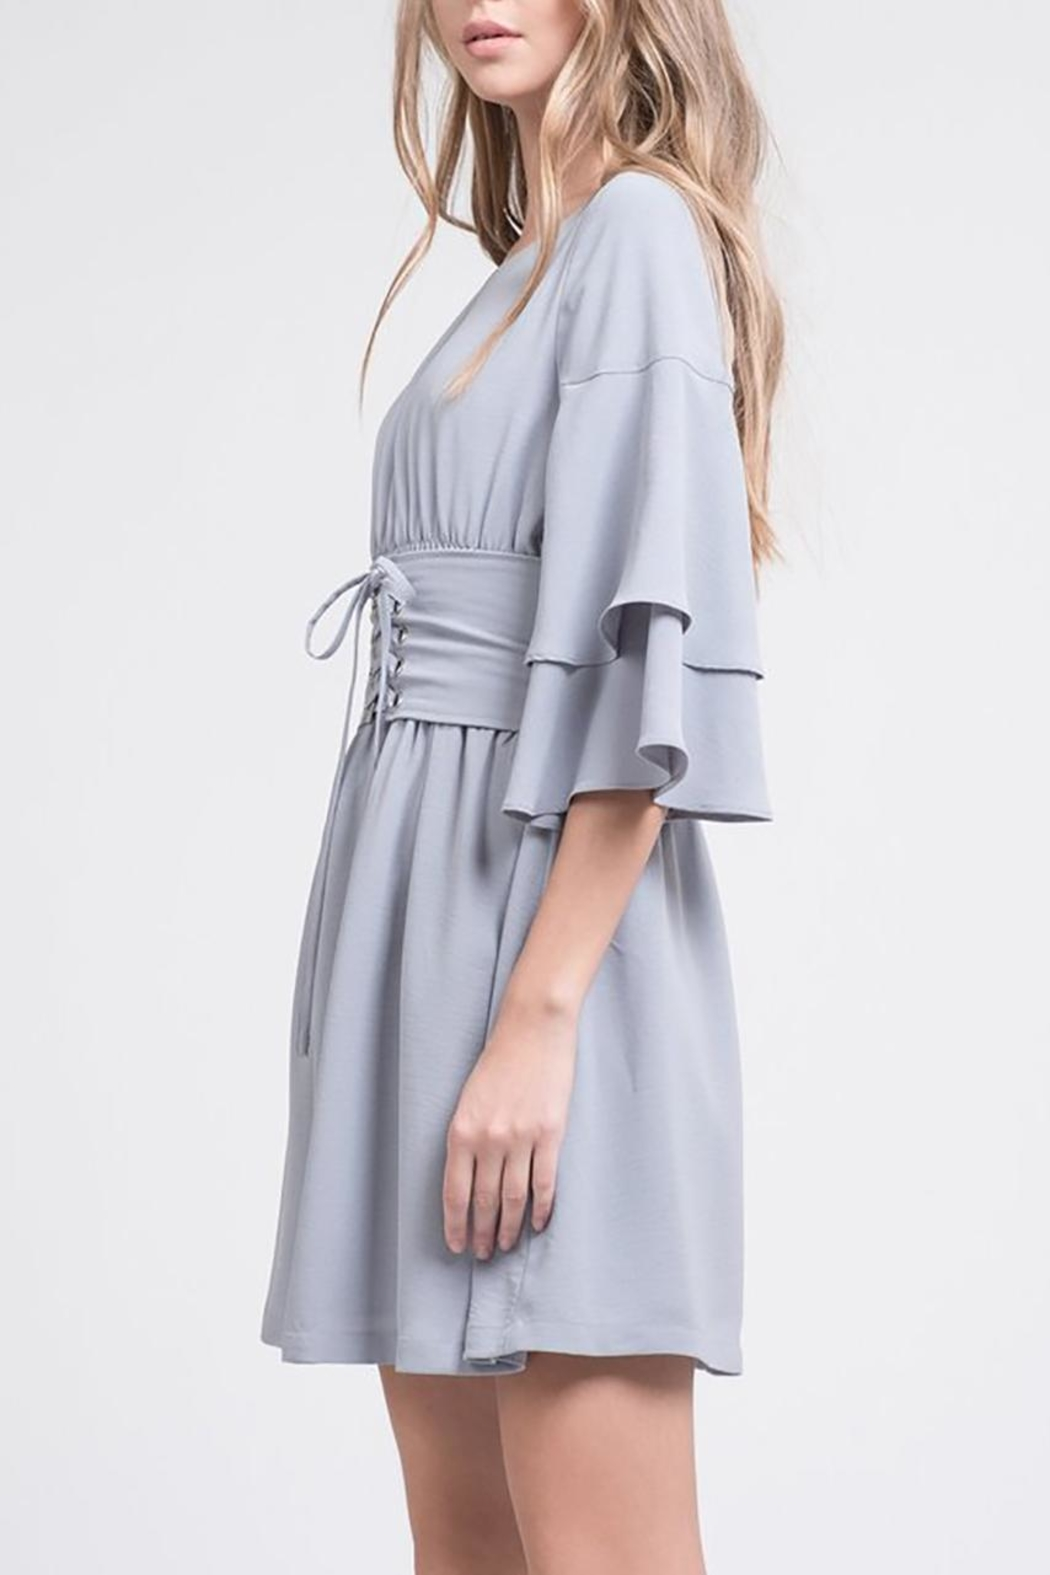 J.O.A. Tiered-Sleeve Corset Dress - Front Full Image